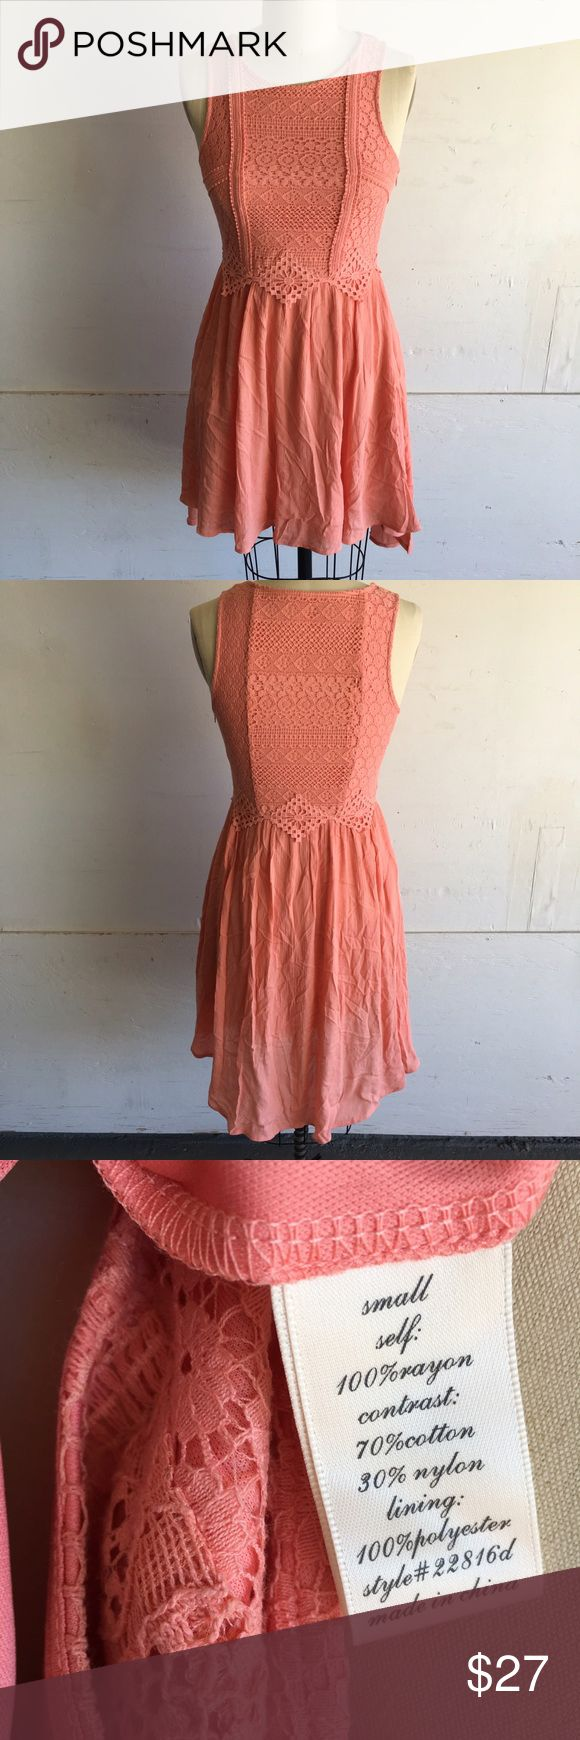 Pinky Melon Sleeveless Dress NWT New/Never Used Wrinkles can be steamed out, stored folded. Lace over bodice and lined throughout dress. **Bundle with jewelry in my closet for a greater discount! Francesca's Collections Dresses Wedding